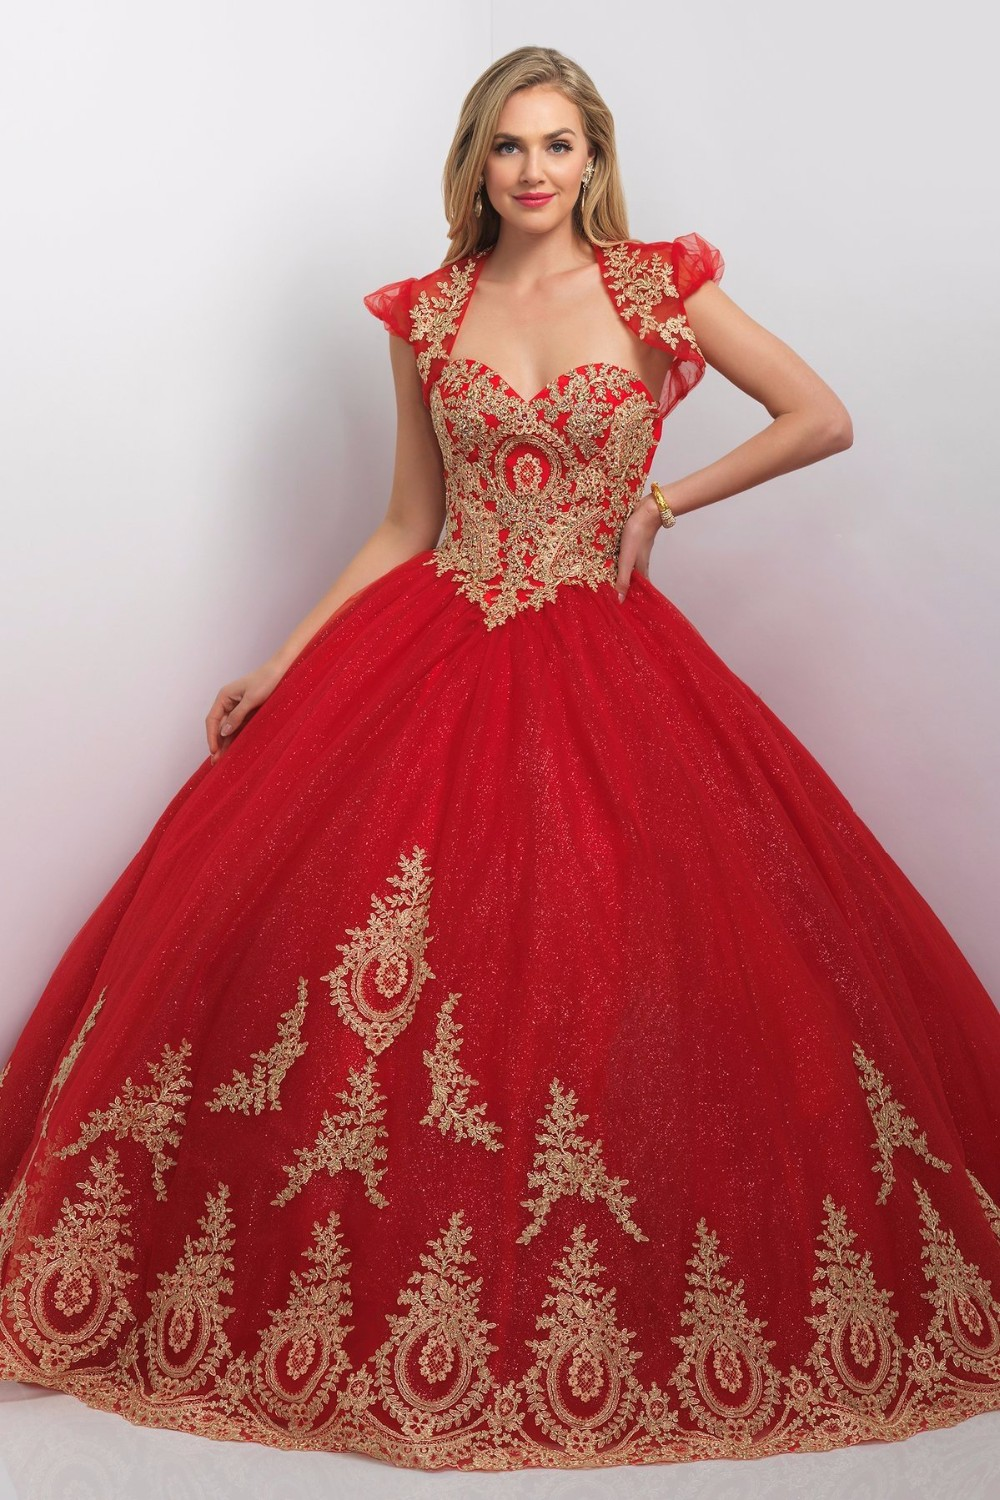 Compare Prices on Red Gold Sequins Quinceanera Dress- Online ...